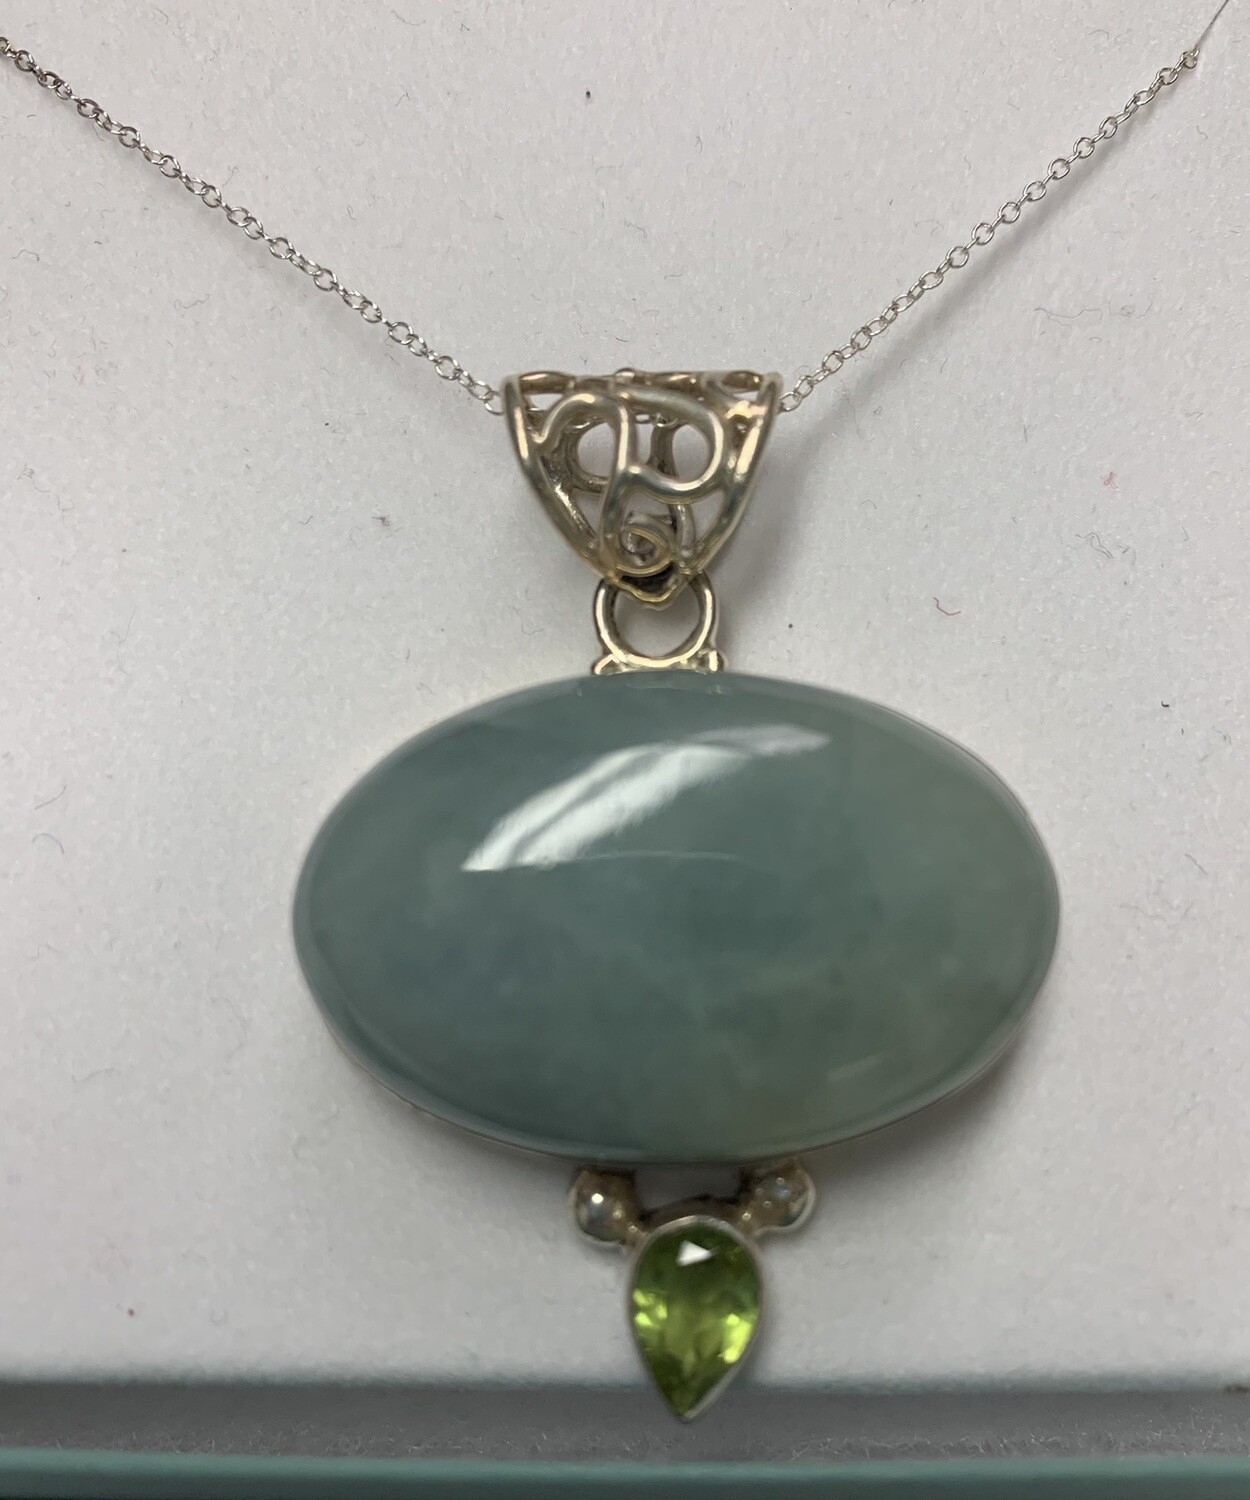 Translucent Green Agate Sterling Silver Pendant With Chain Necklace